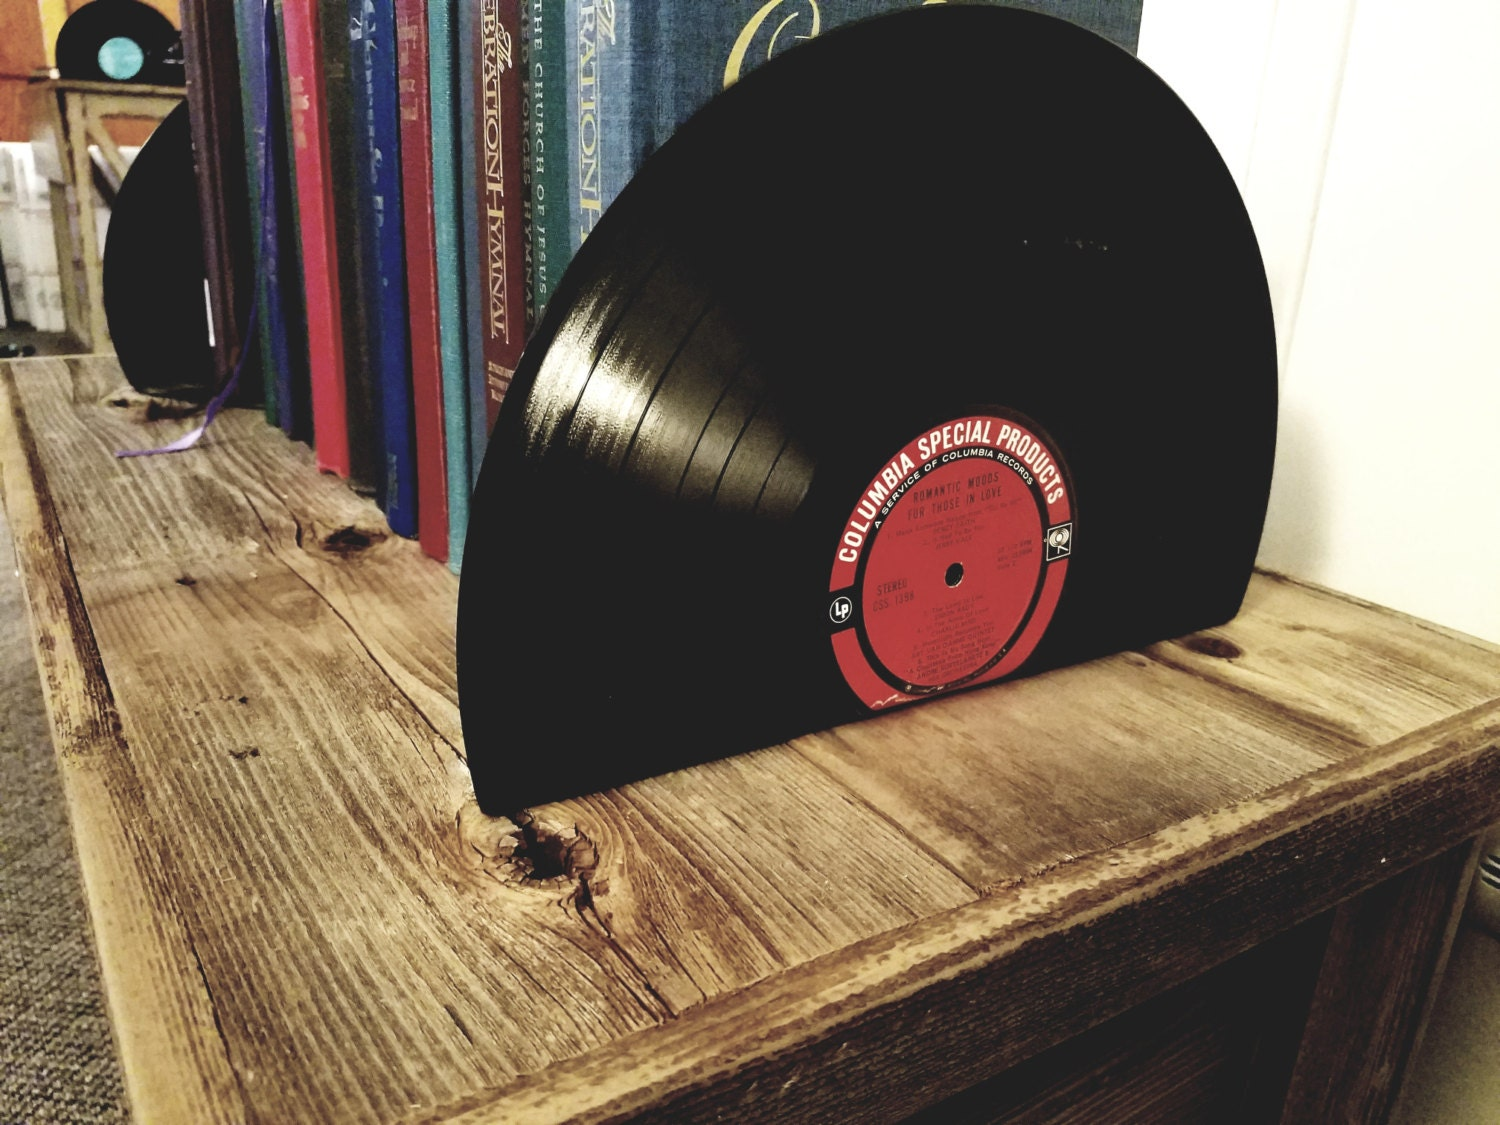 Vinyl Record Bookends Vintage Bookends For The Music